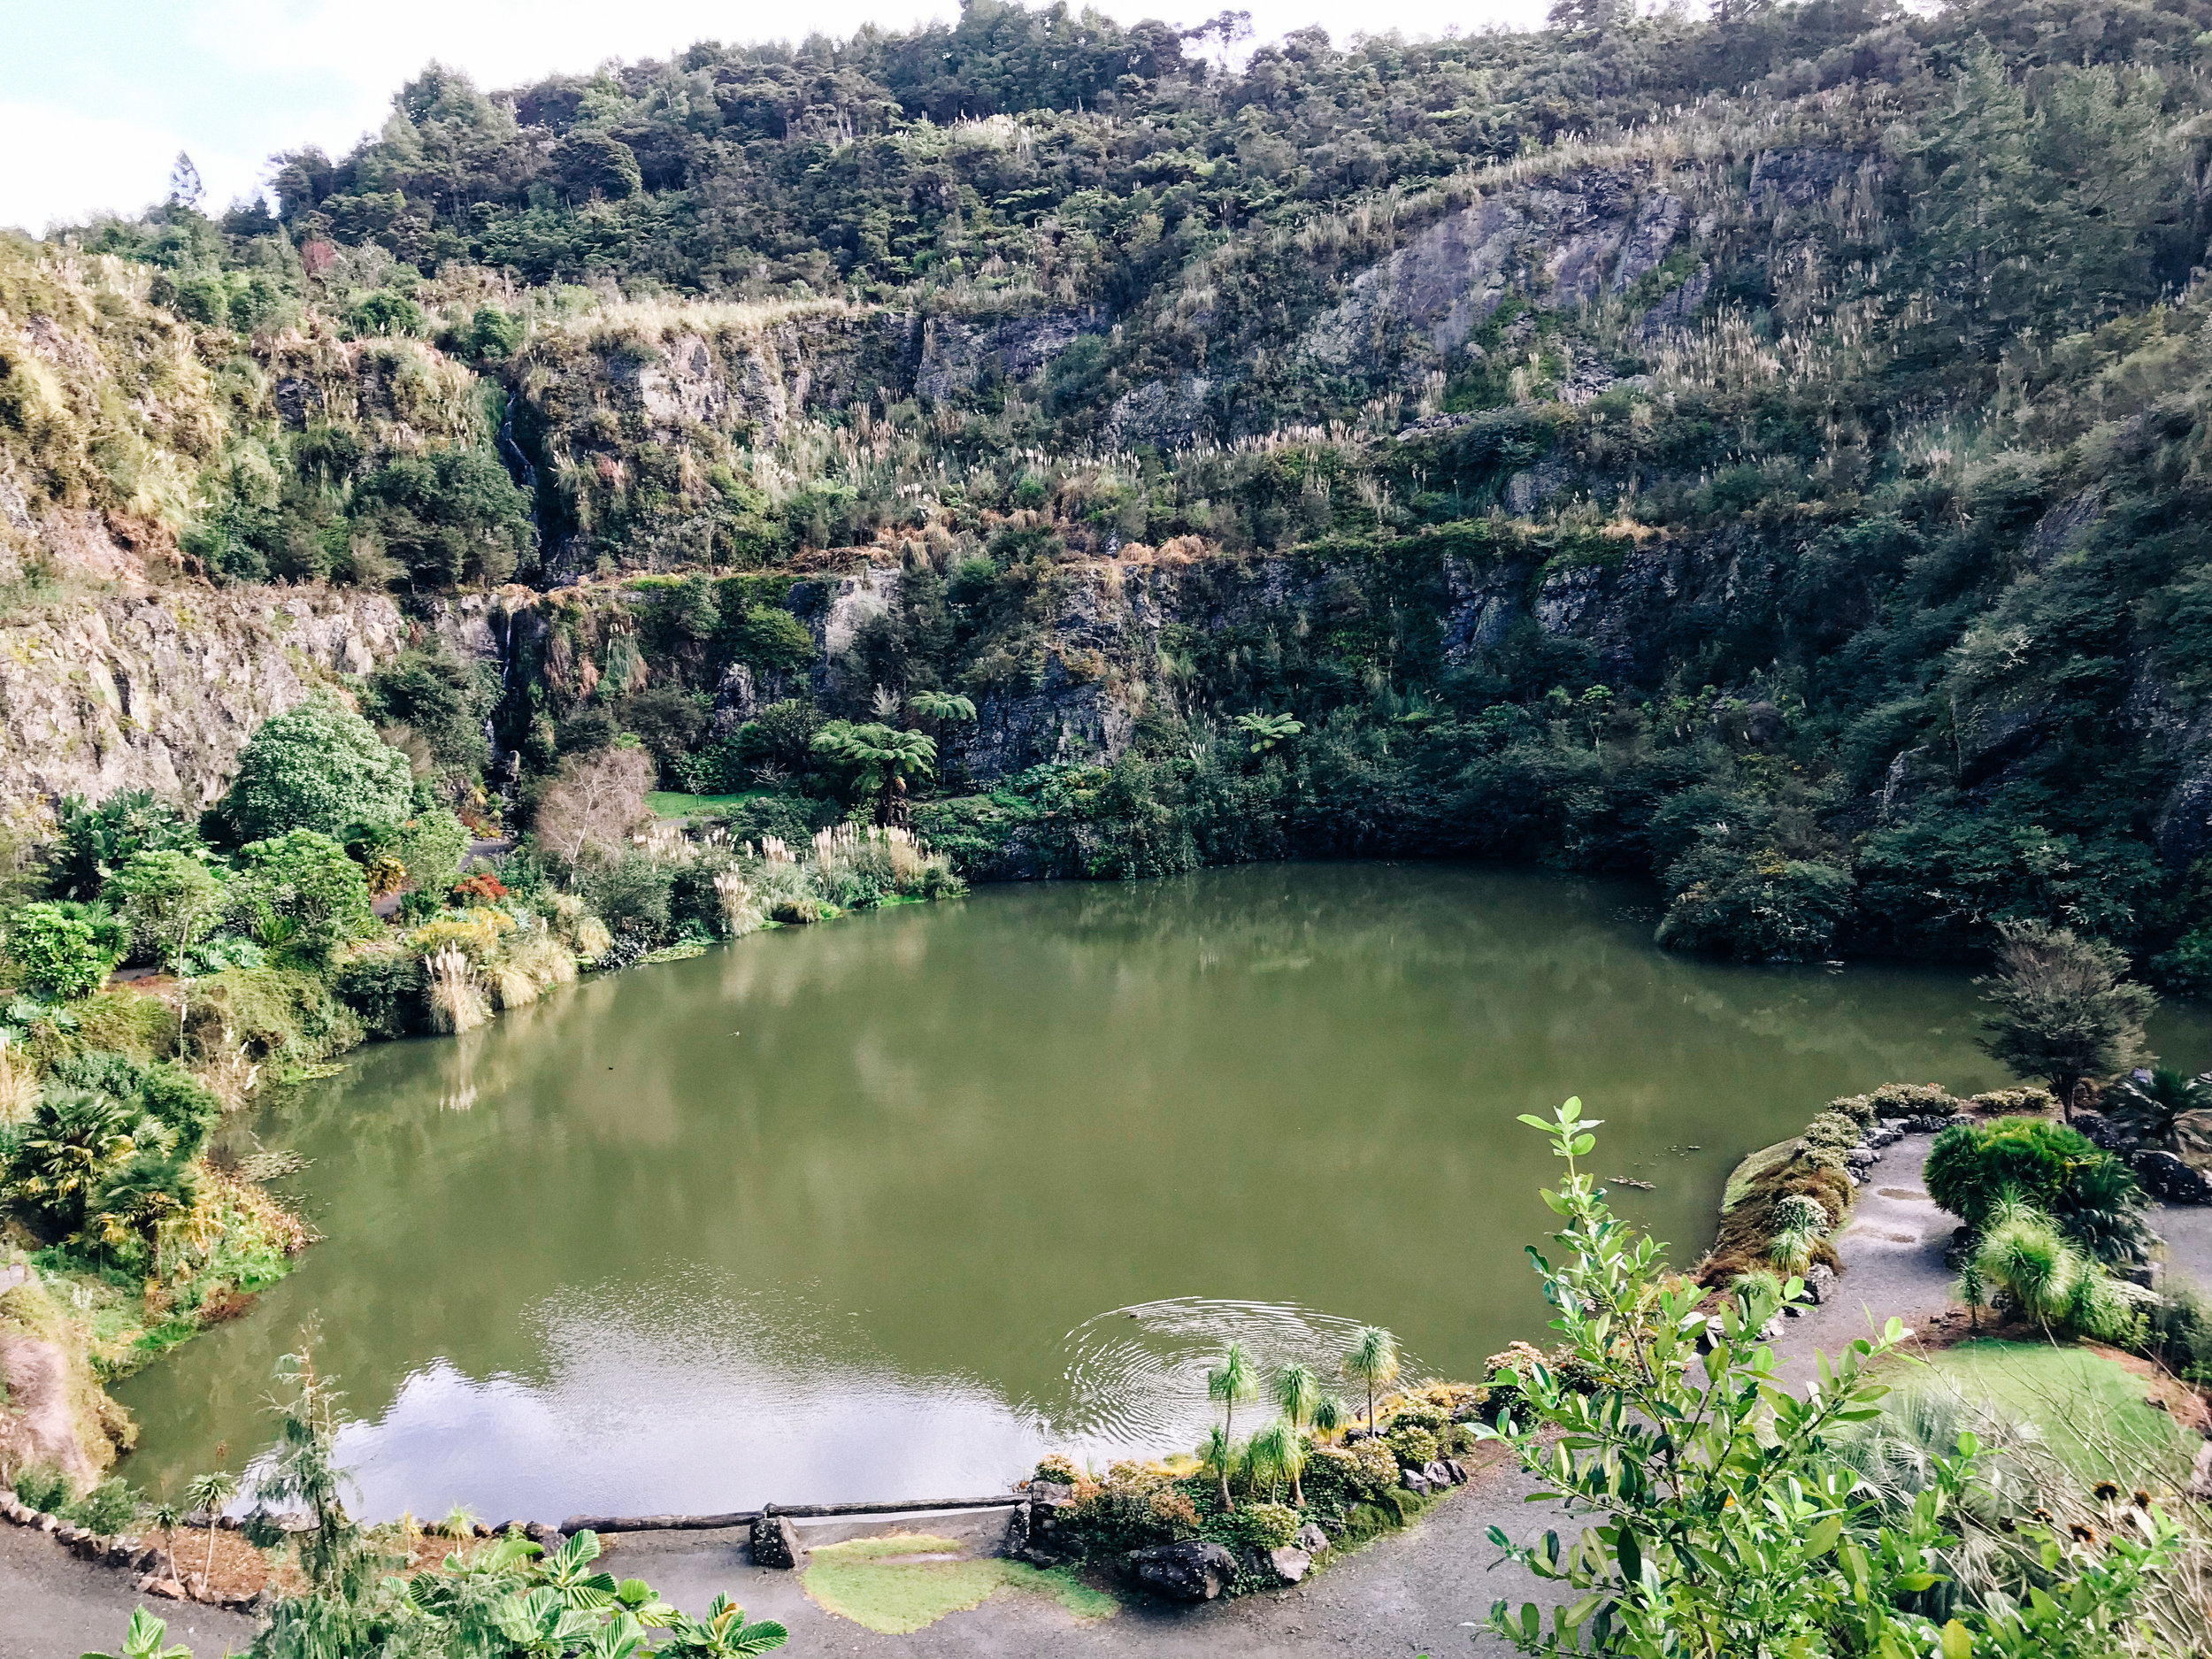 The lake where the quarry used to be. Now surrounds the beautiful garden area.